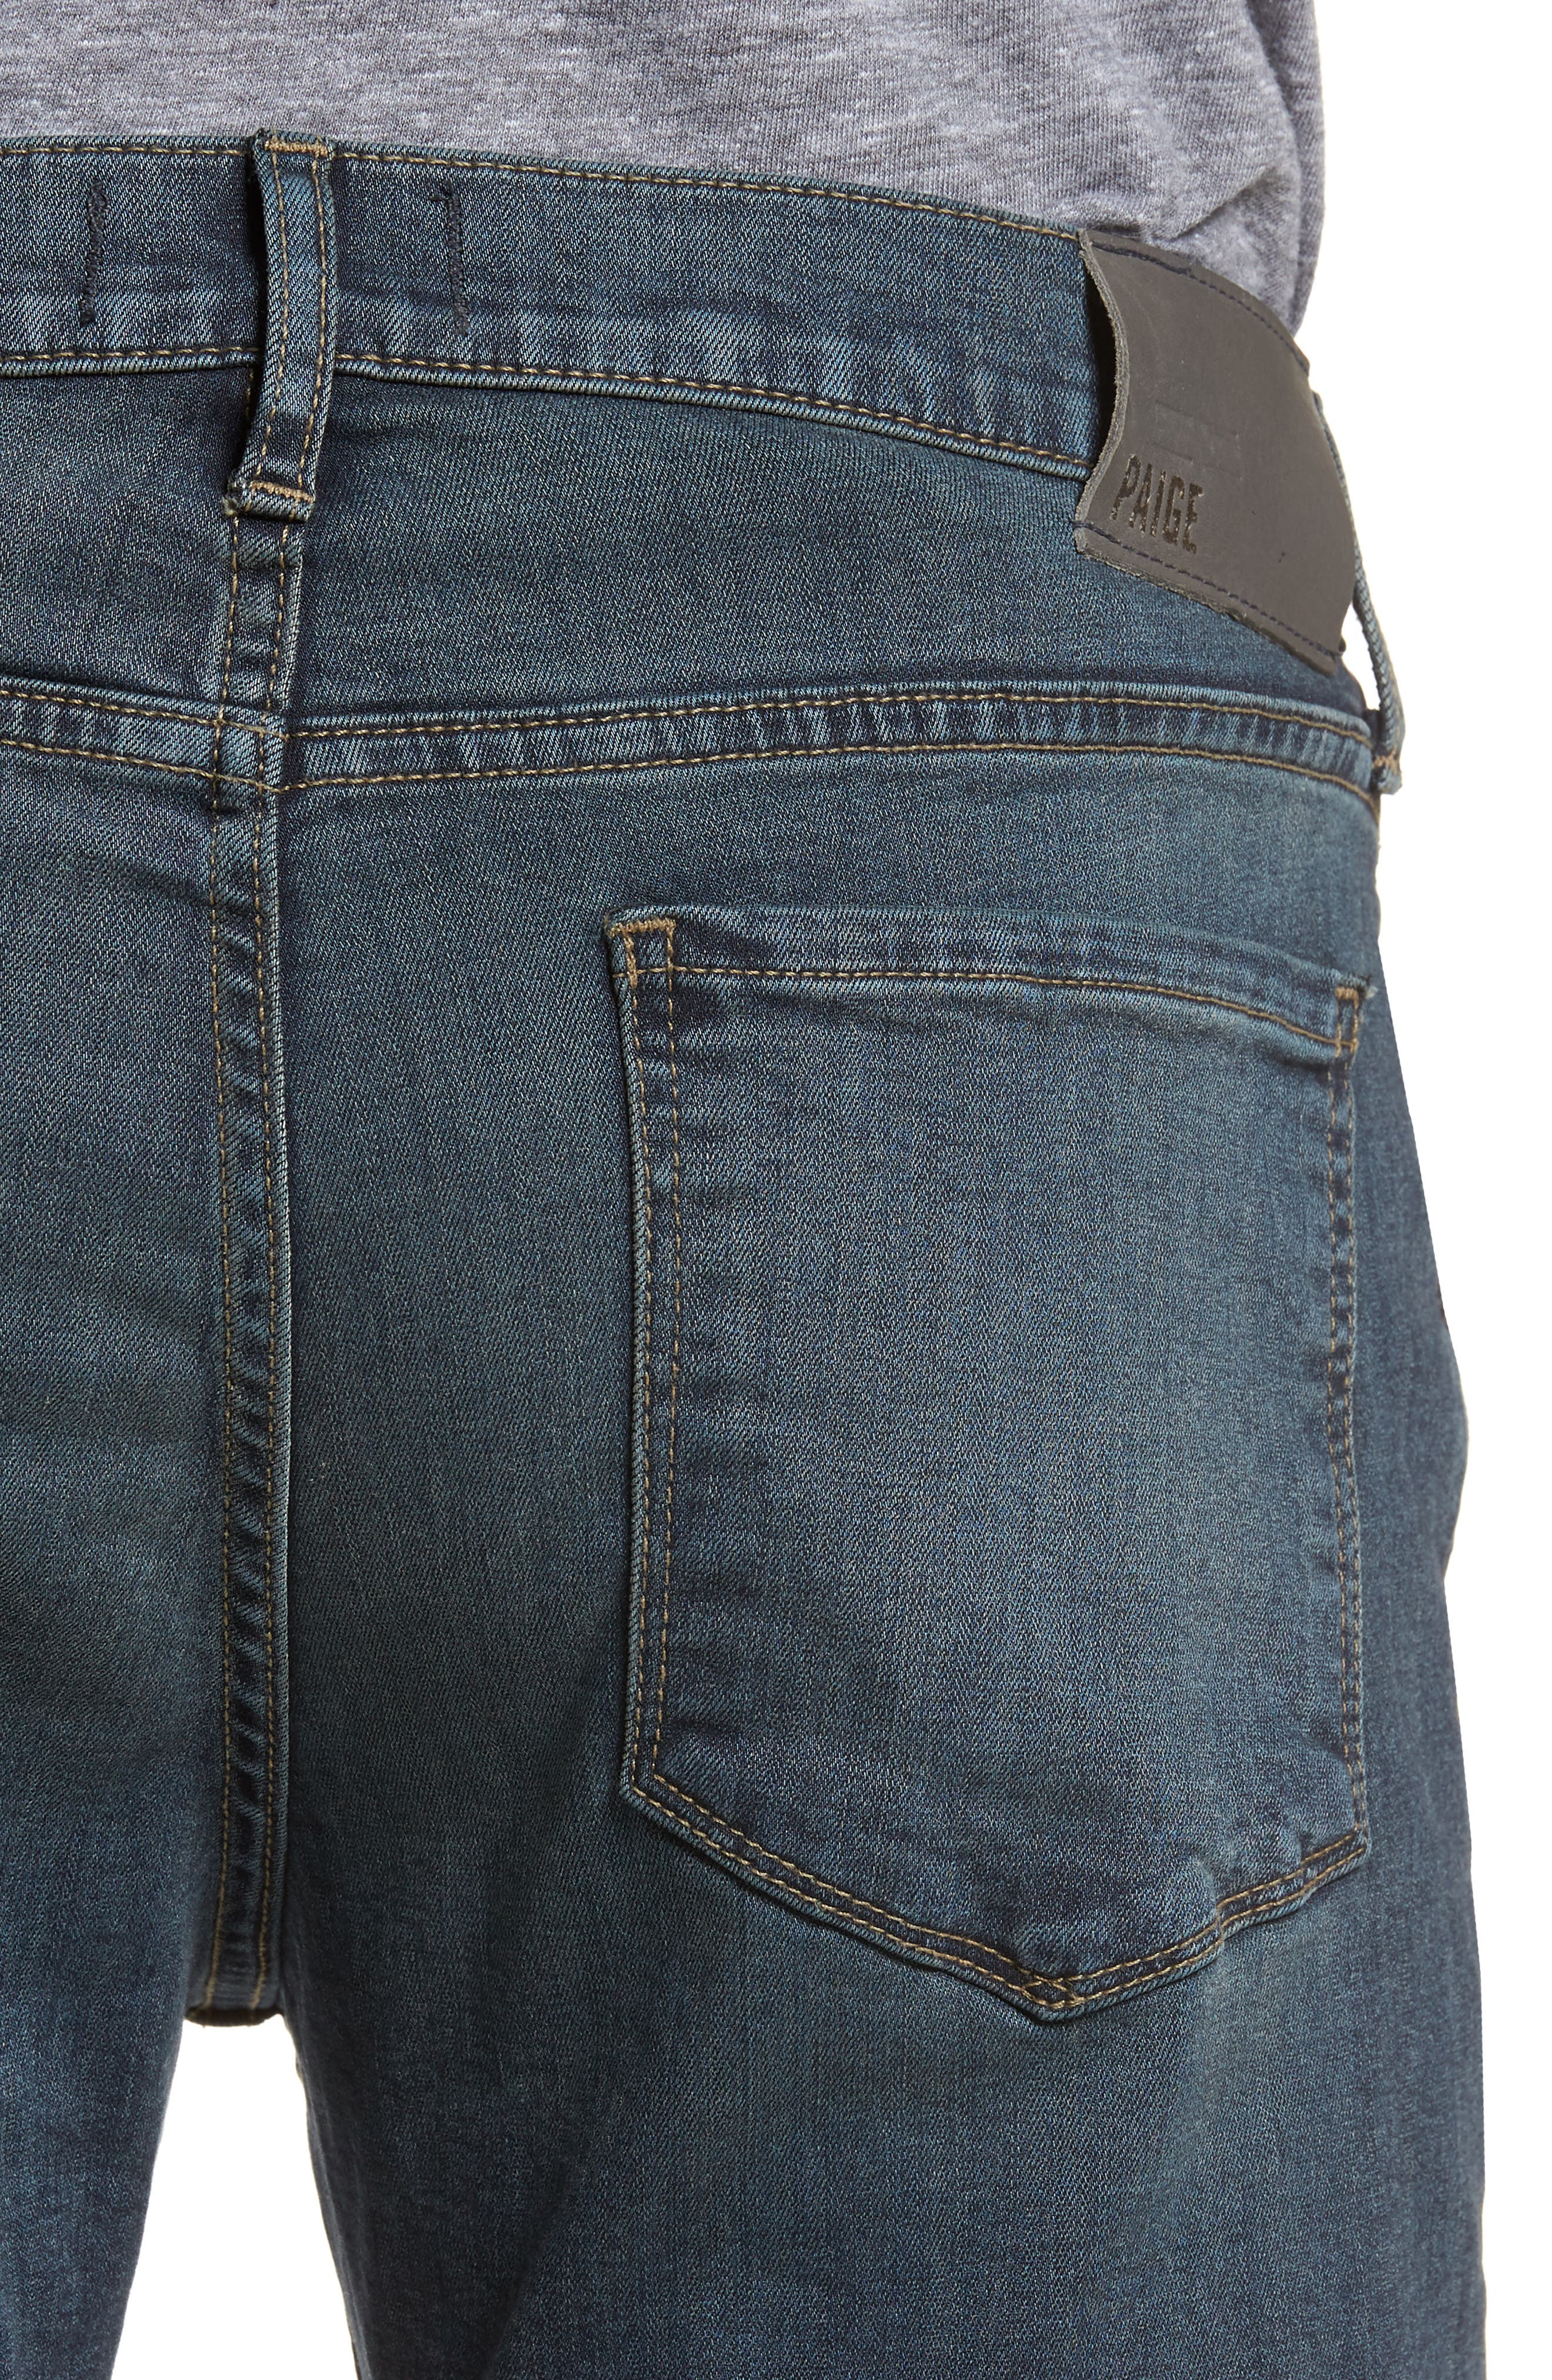 Byron Slim Straight Fit Jeans,                             Alternate thumbnail 4, color,                             Cruise